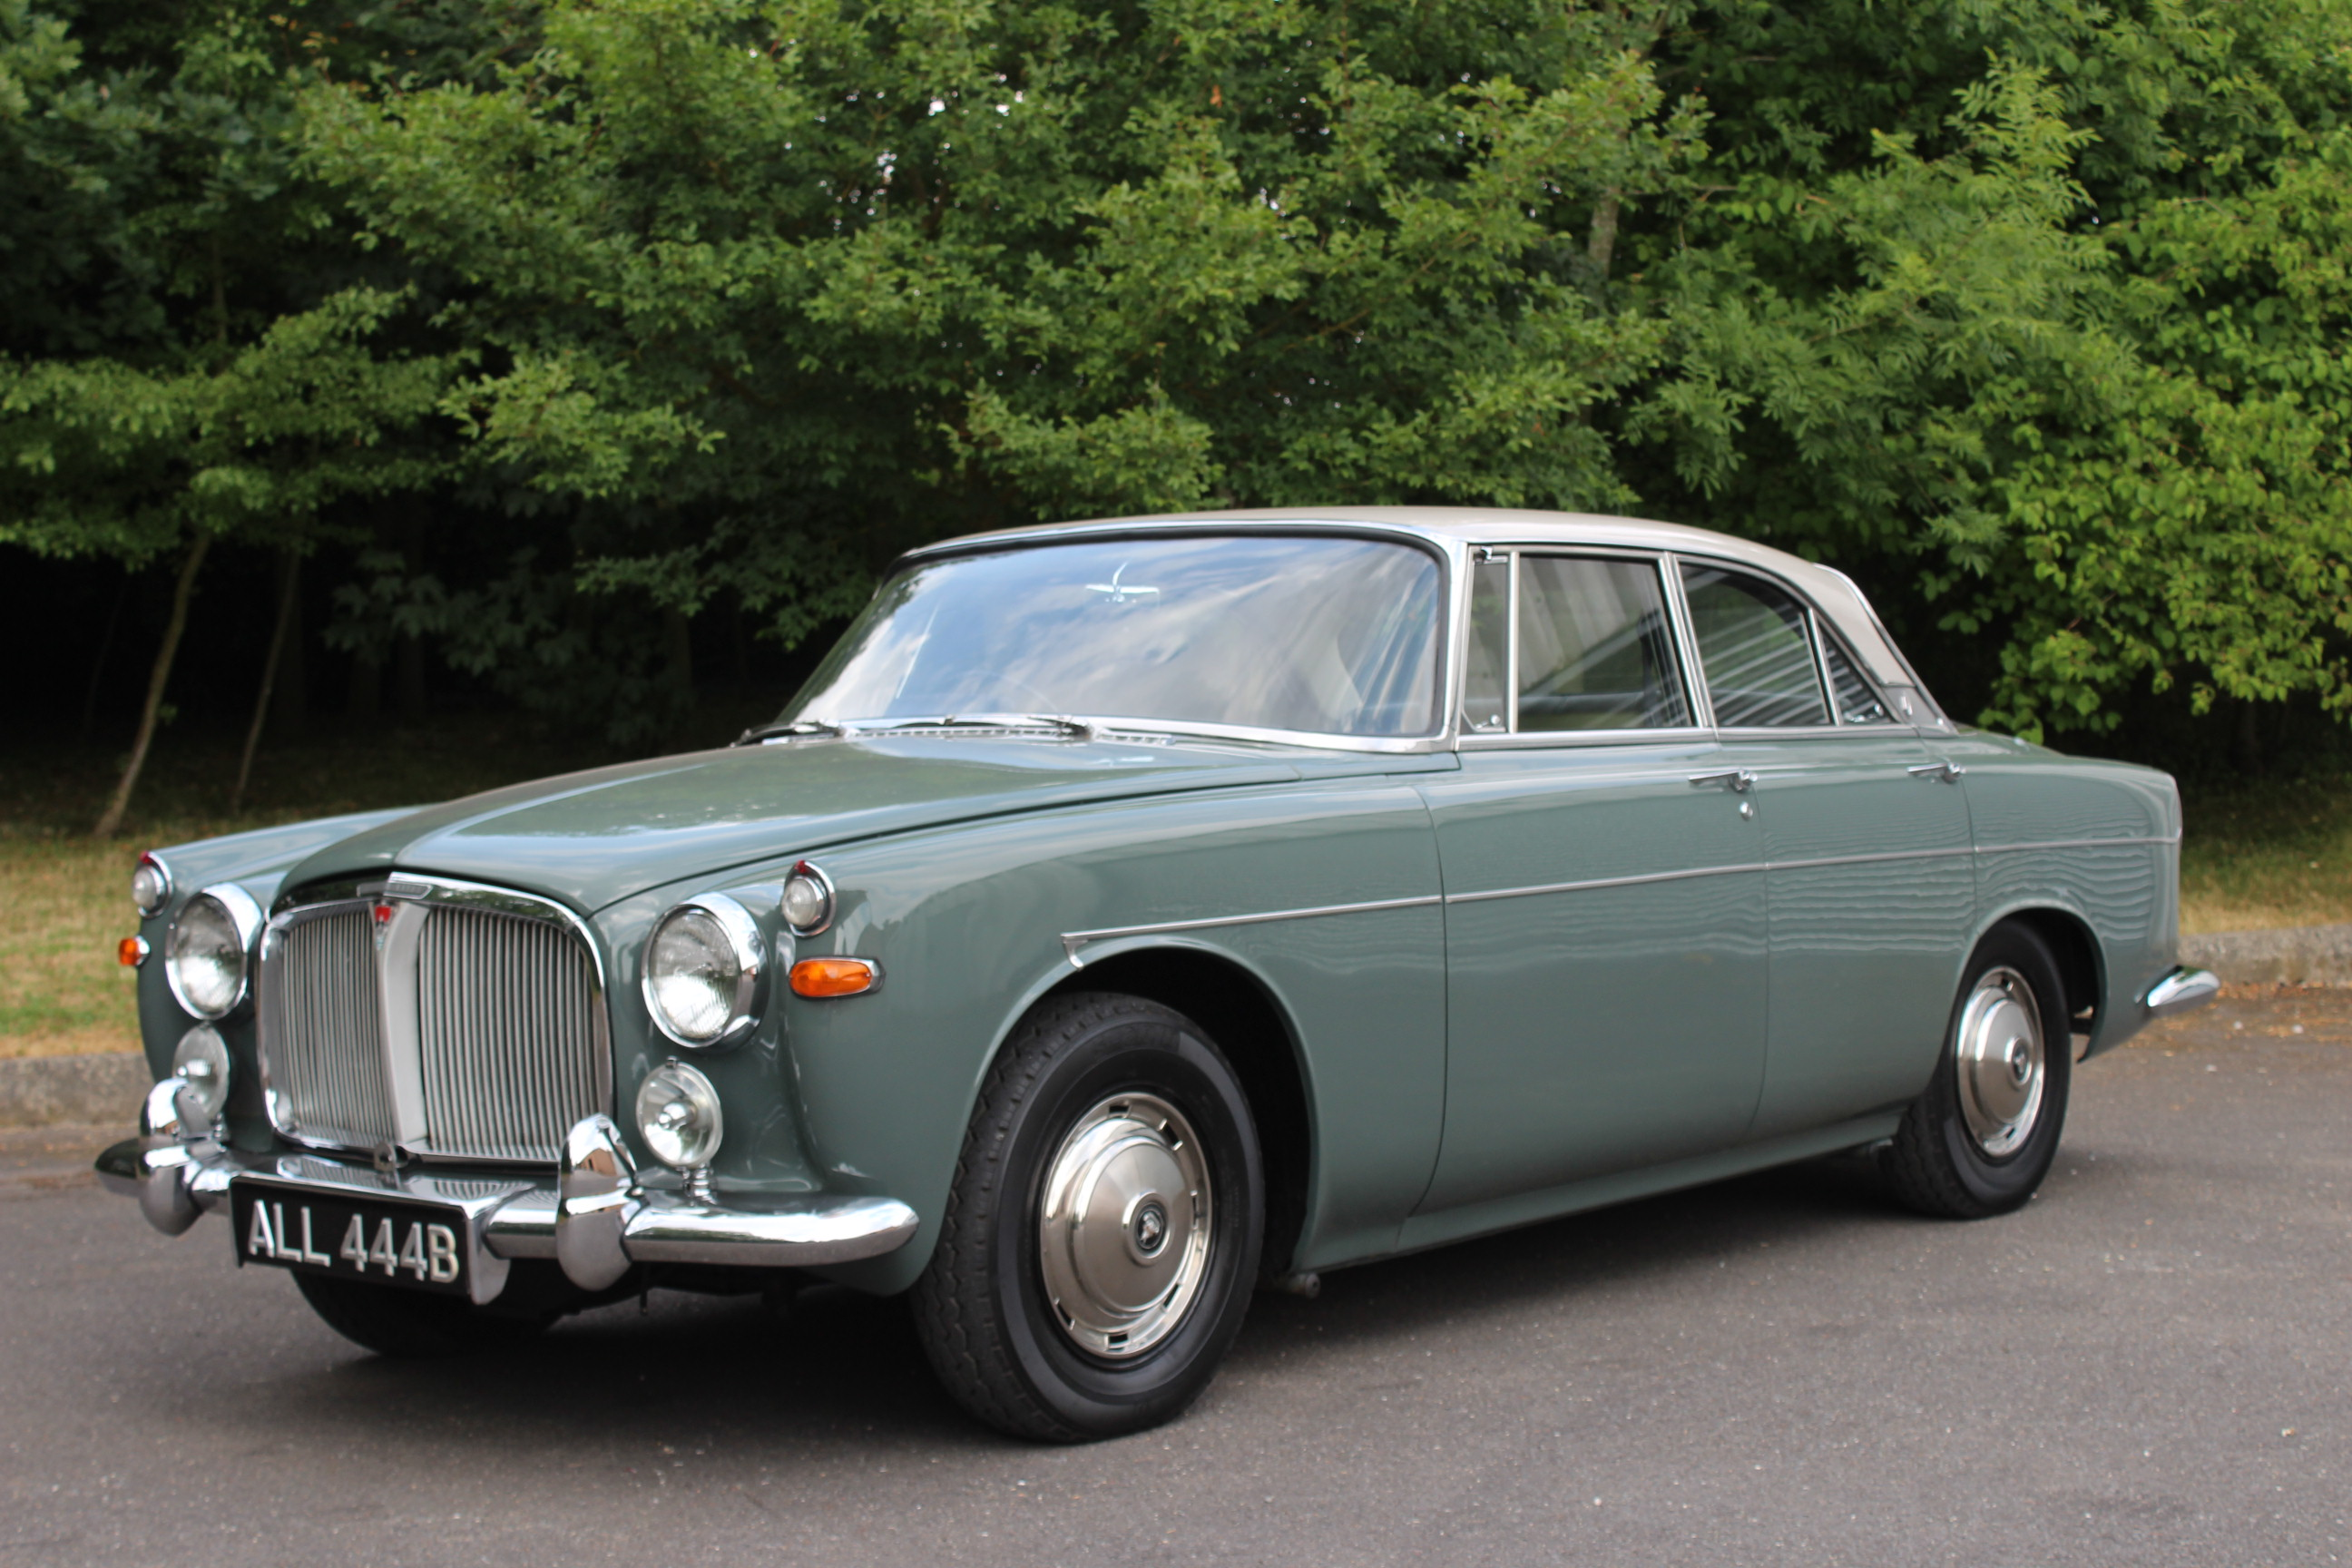 1964 Rover P5 Coupe 3 Litre Auto Sherwood Restorations